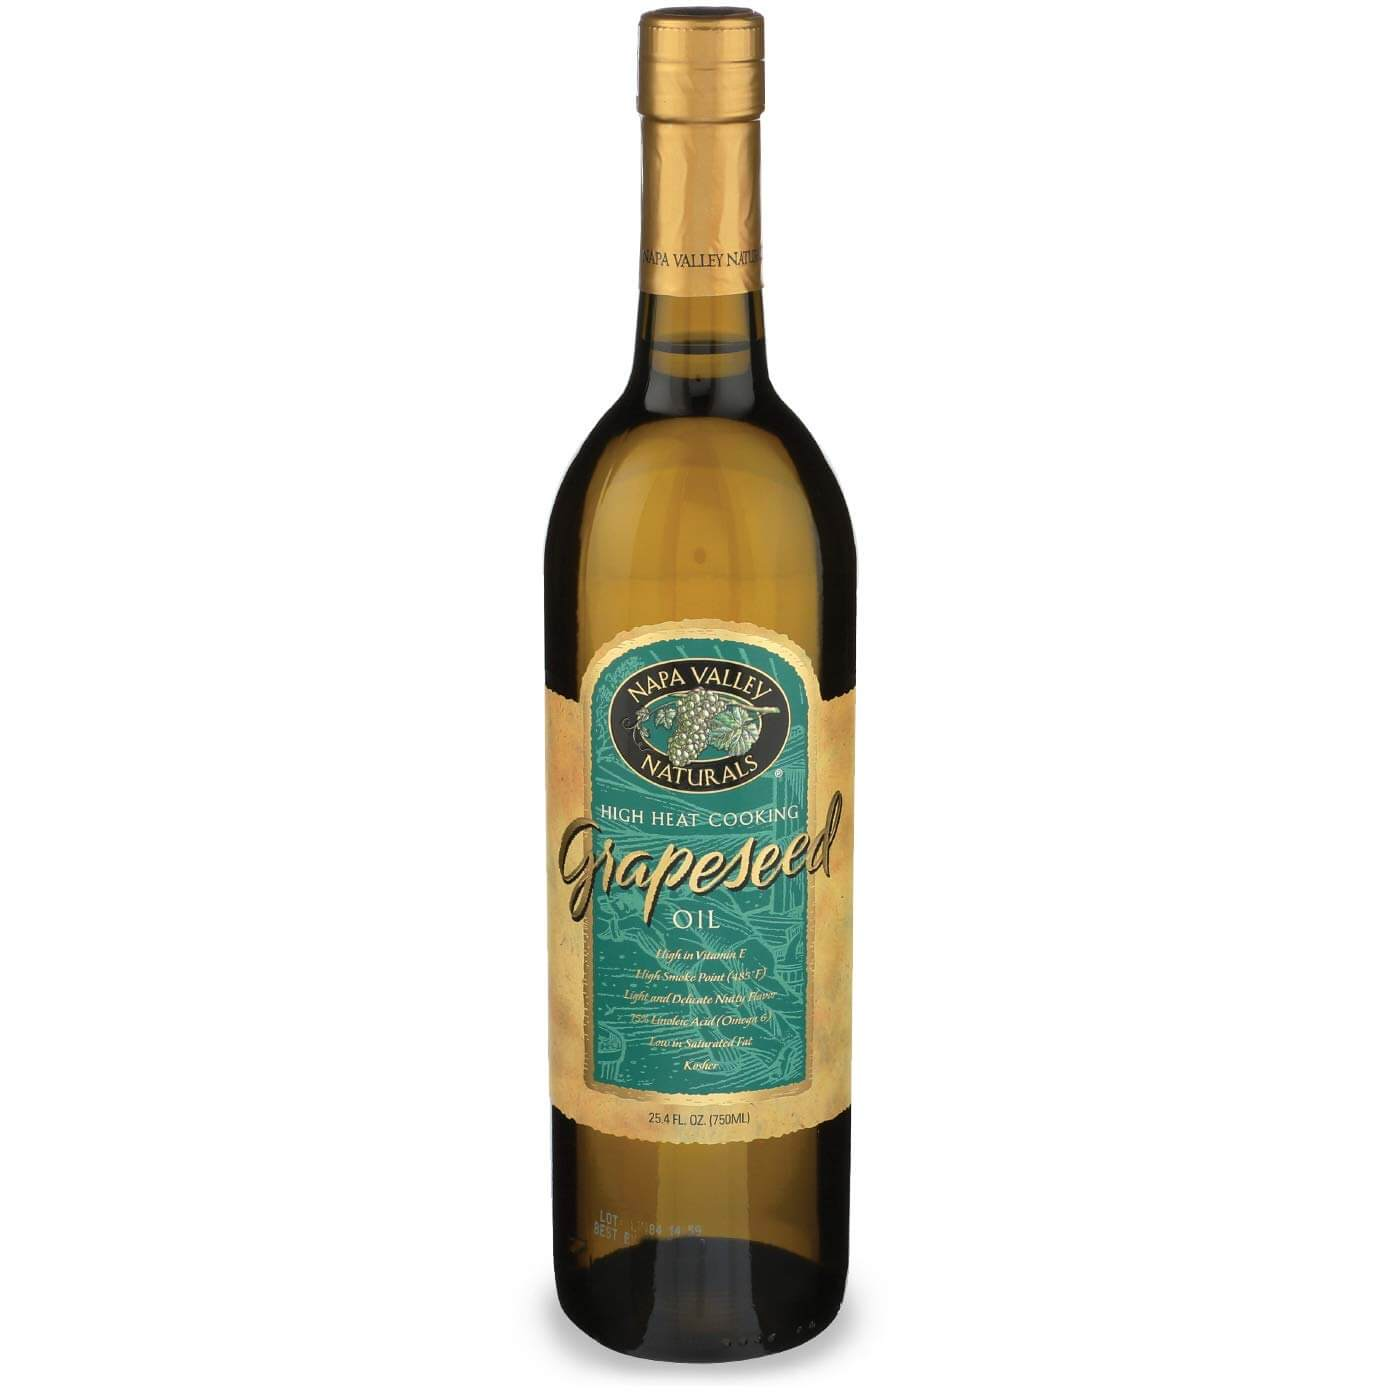 Napa Valley Naturals Grapeseed Oil